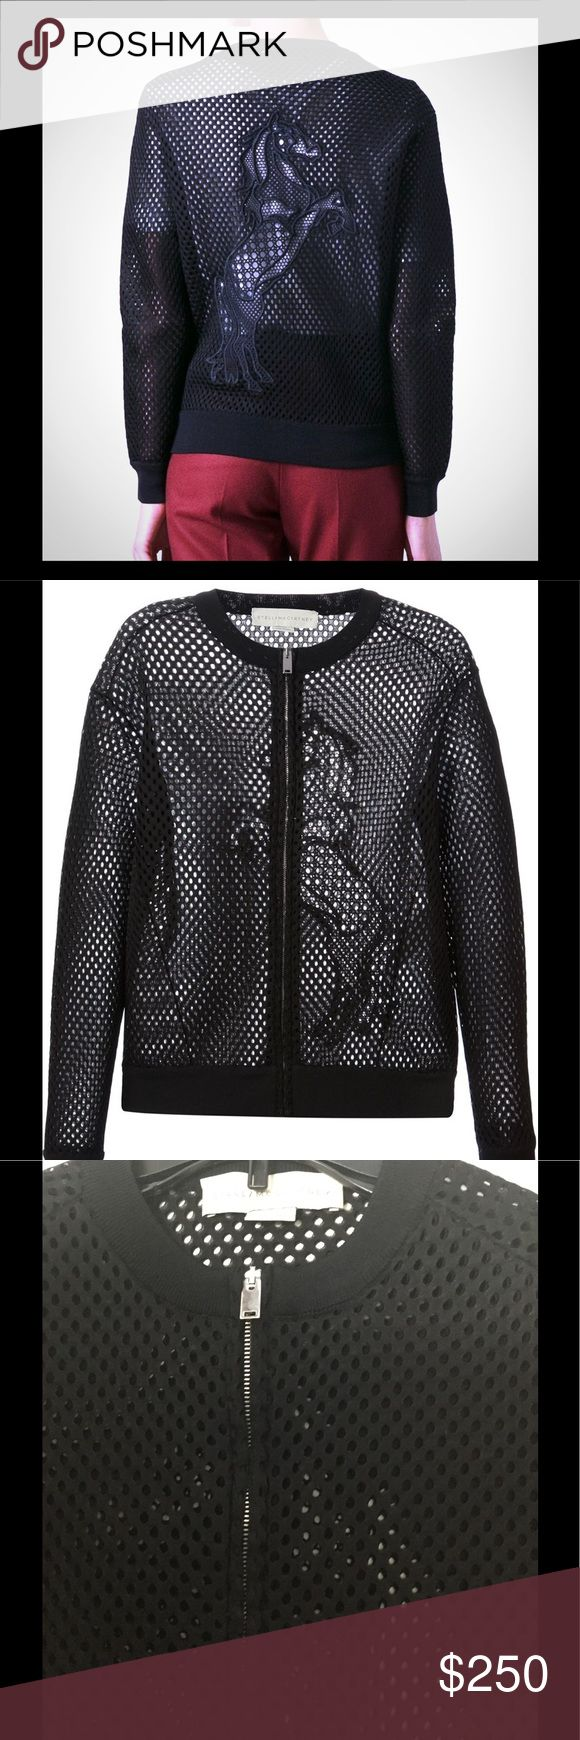 Stella McCartney Black Mesh Horse Jacket. Please read all. Authentic New Stella McCartney Mesh Jacket without tags. There is a tear where the inside label is.Someone tried tearing the label and ripped material. This is very small and a couple stitches would take care of. This is sold out. Last seen for sale at farfetch for 1095.00- price reflects the defect. The rest of jacket is new never worn. Stella McCartney Jackets & Coats Blazers